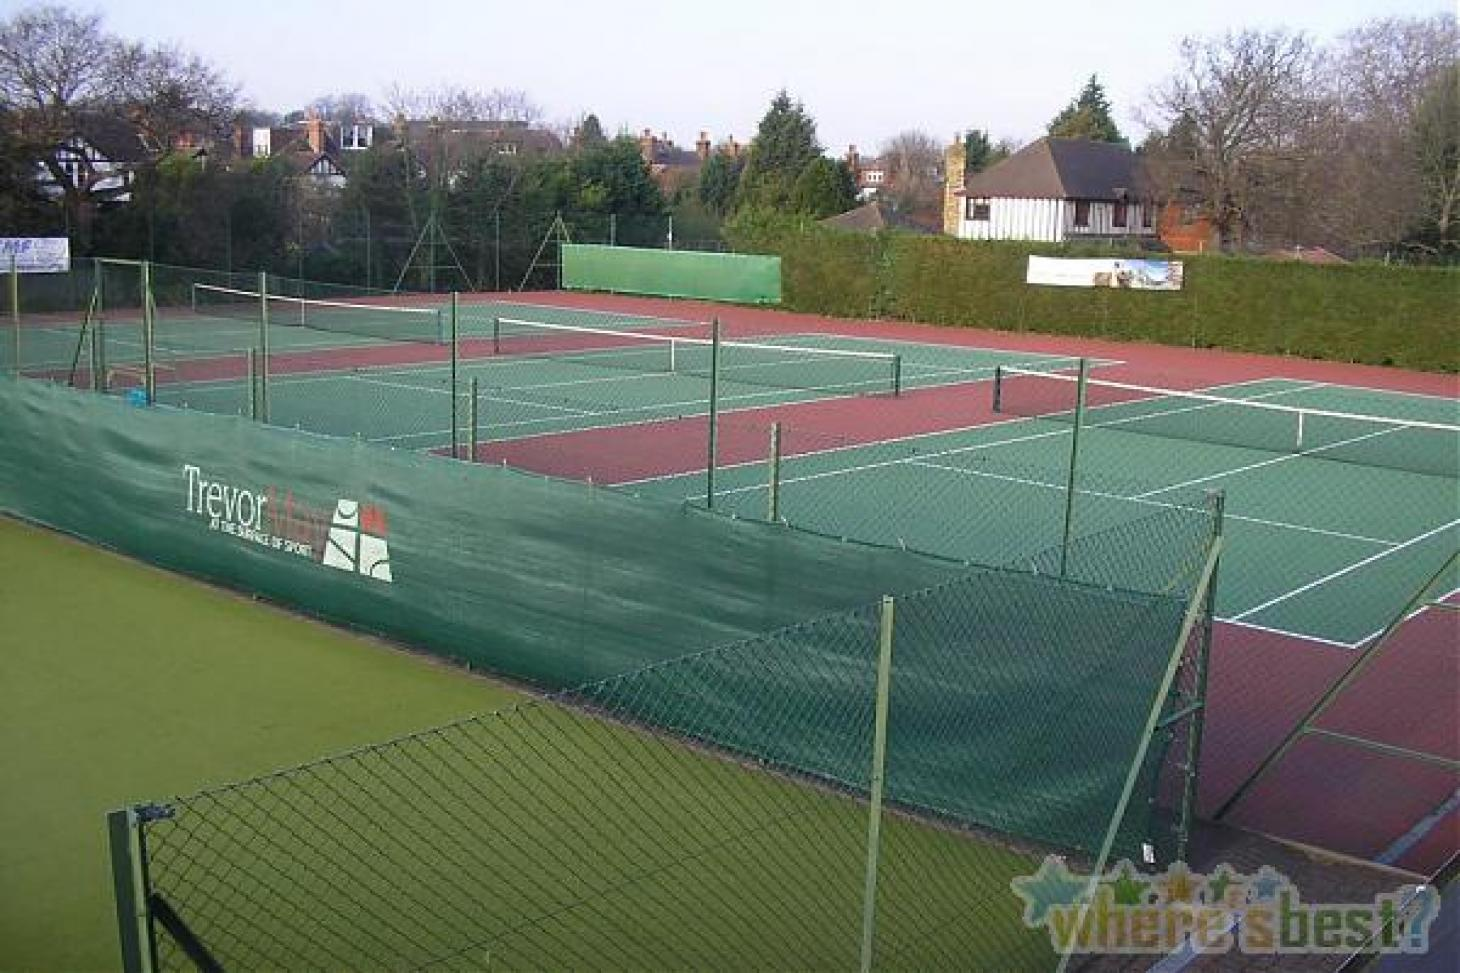 Bromley Lawn Tennis and Squash Club Indoor | Hard squash court